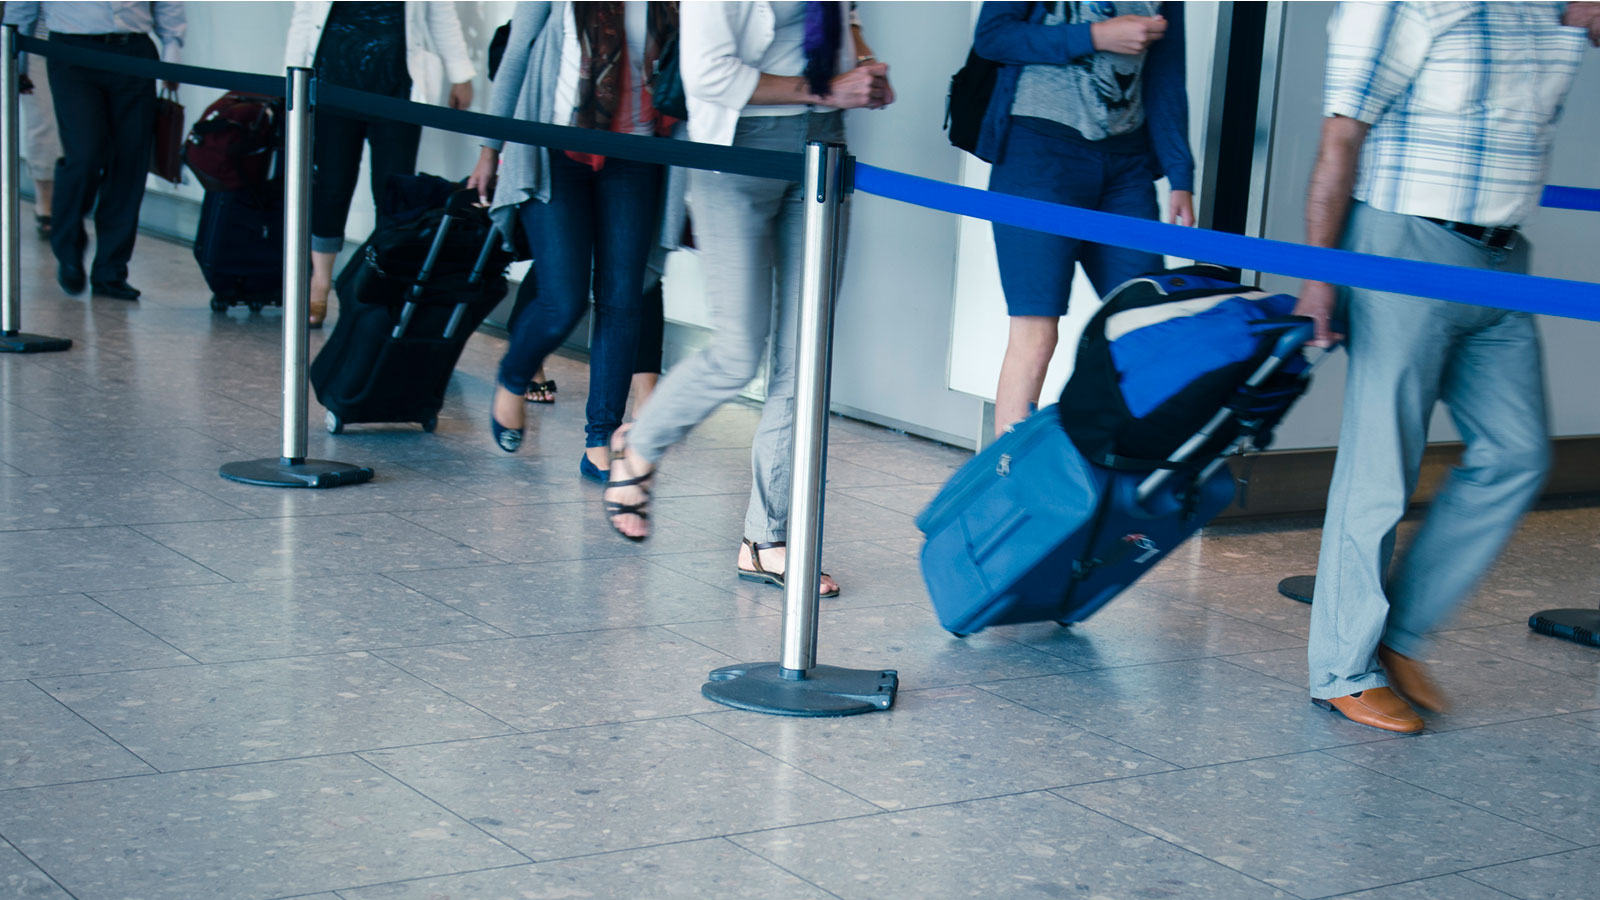 Travelers in line with suitcases